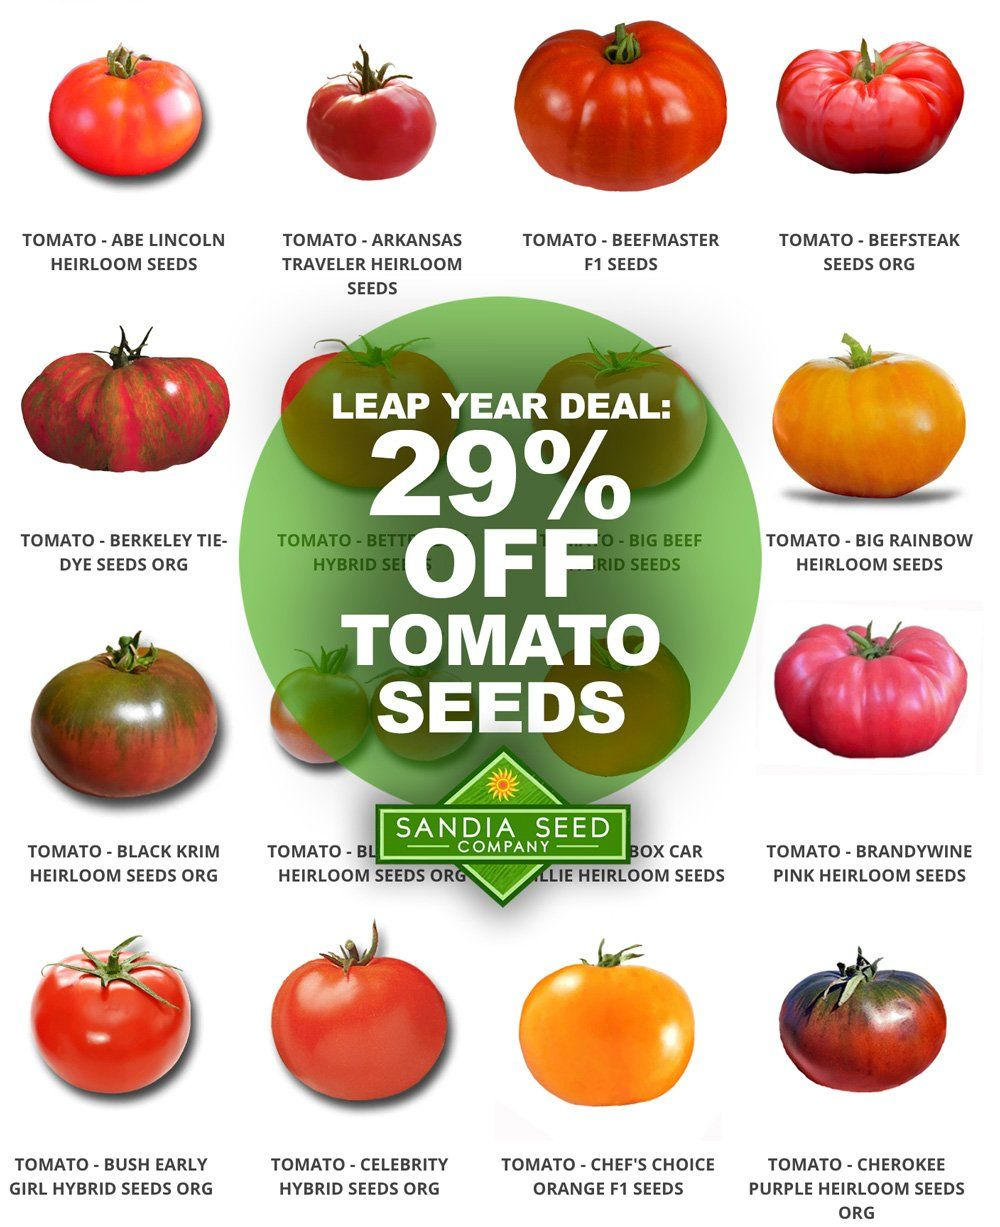 Best heirloom tomato seeds on sale for leap year in 2020